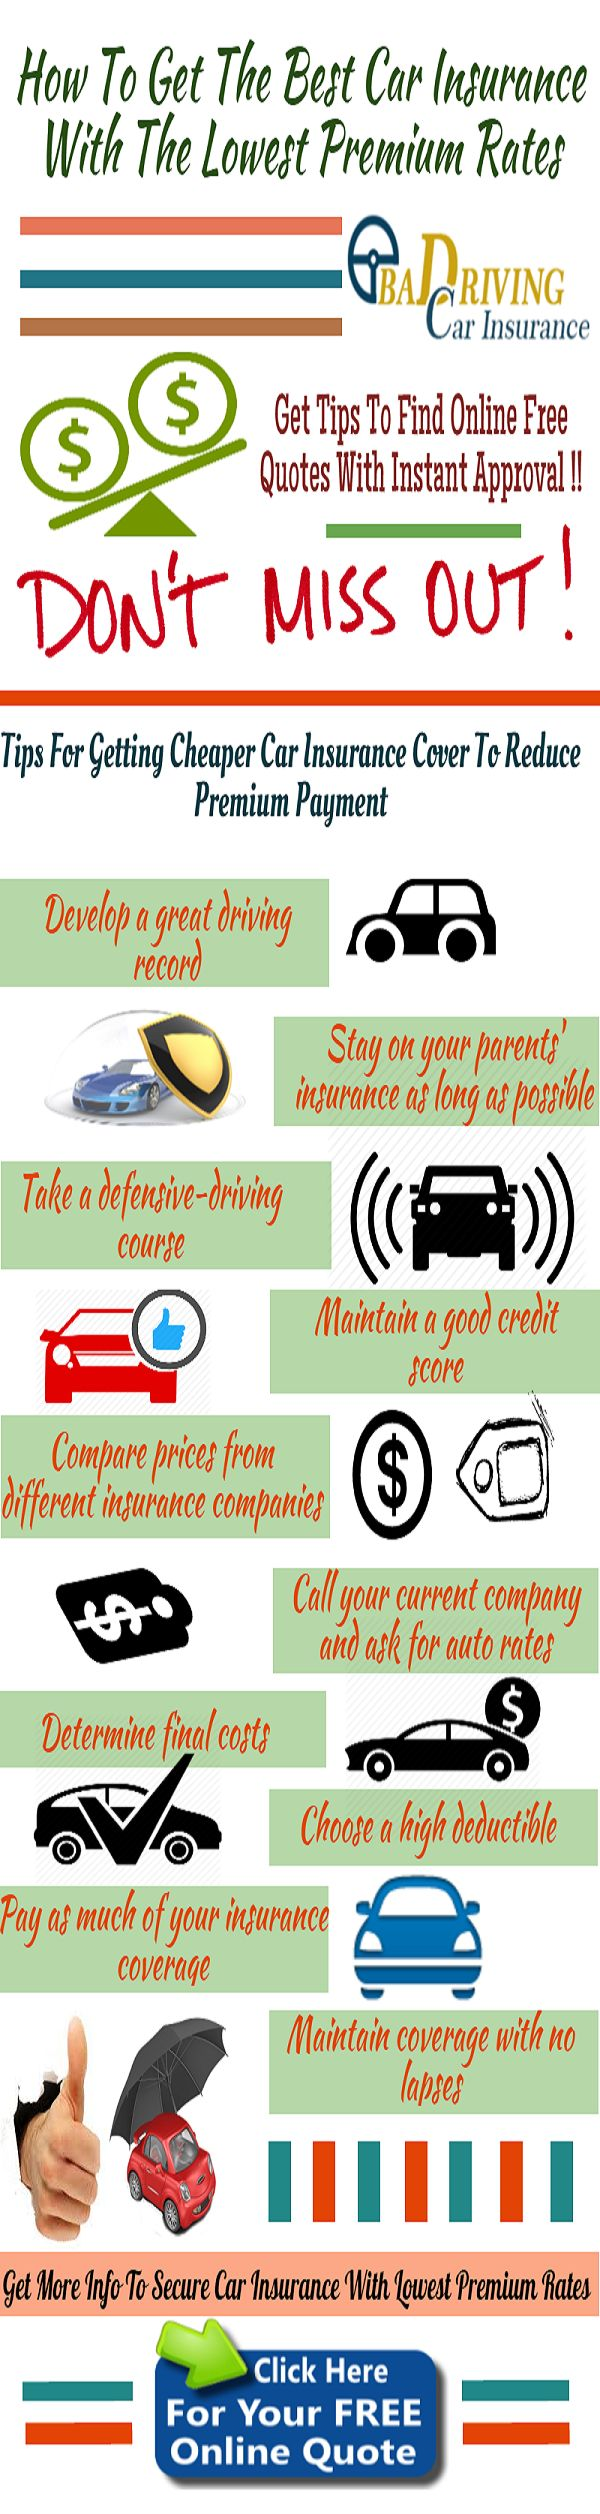 Car Insurance Free Quote Fair 9 Best Carauto Insurance Infographic Images On Pinterest